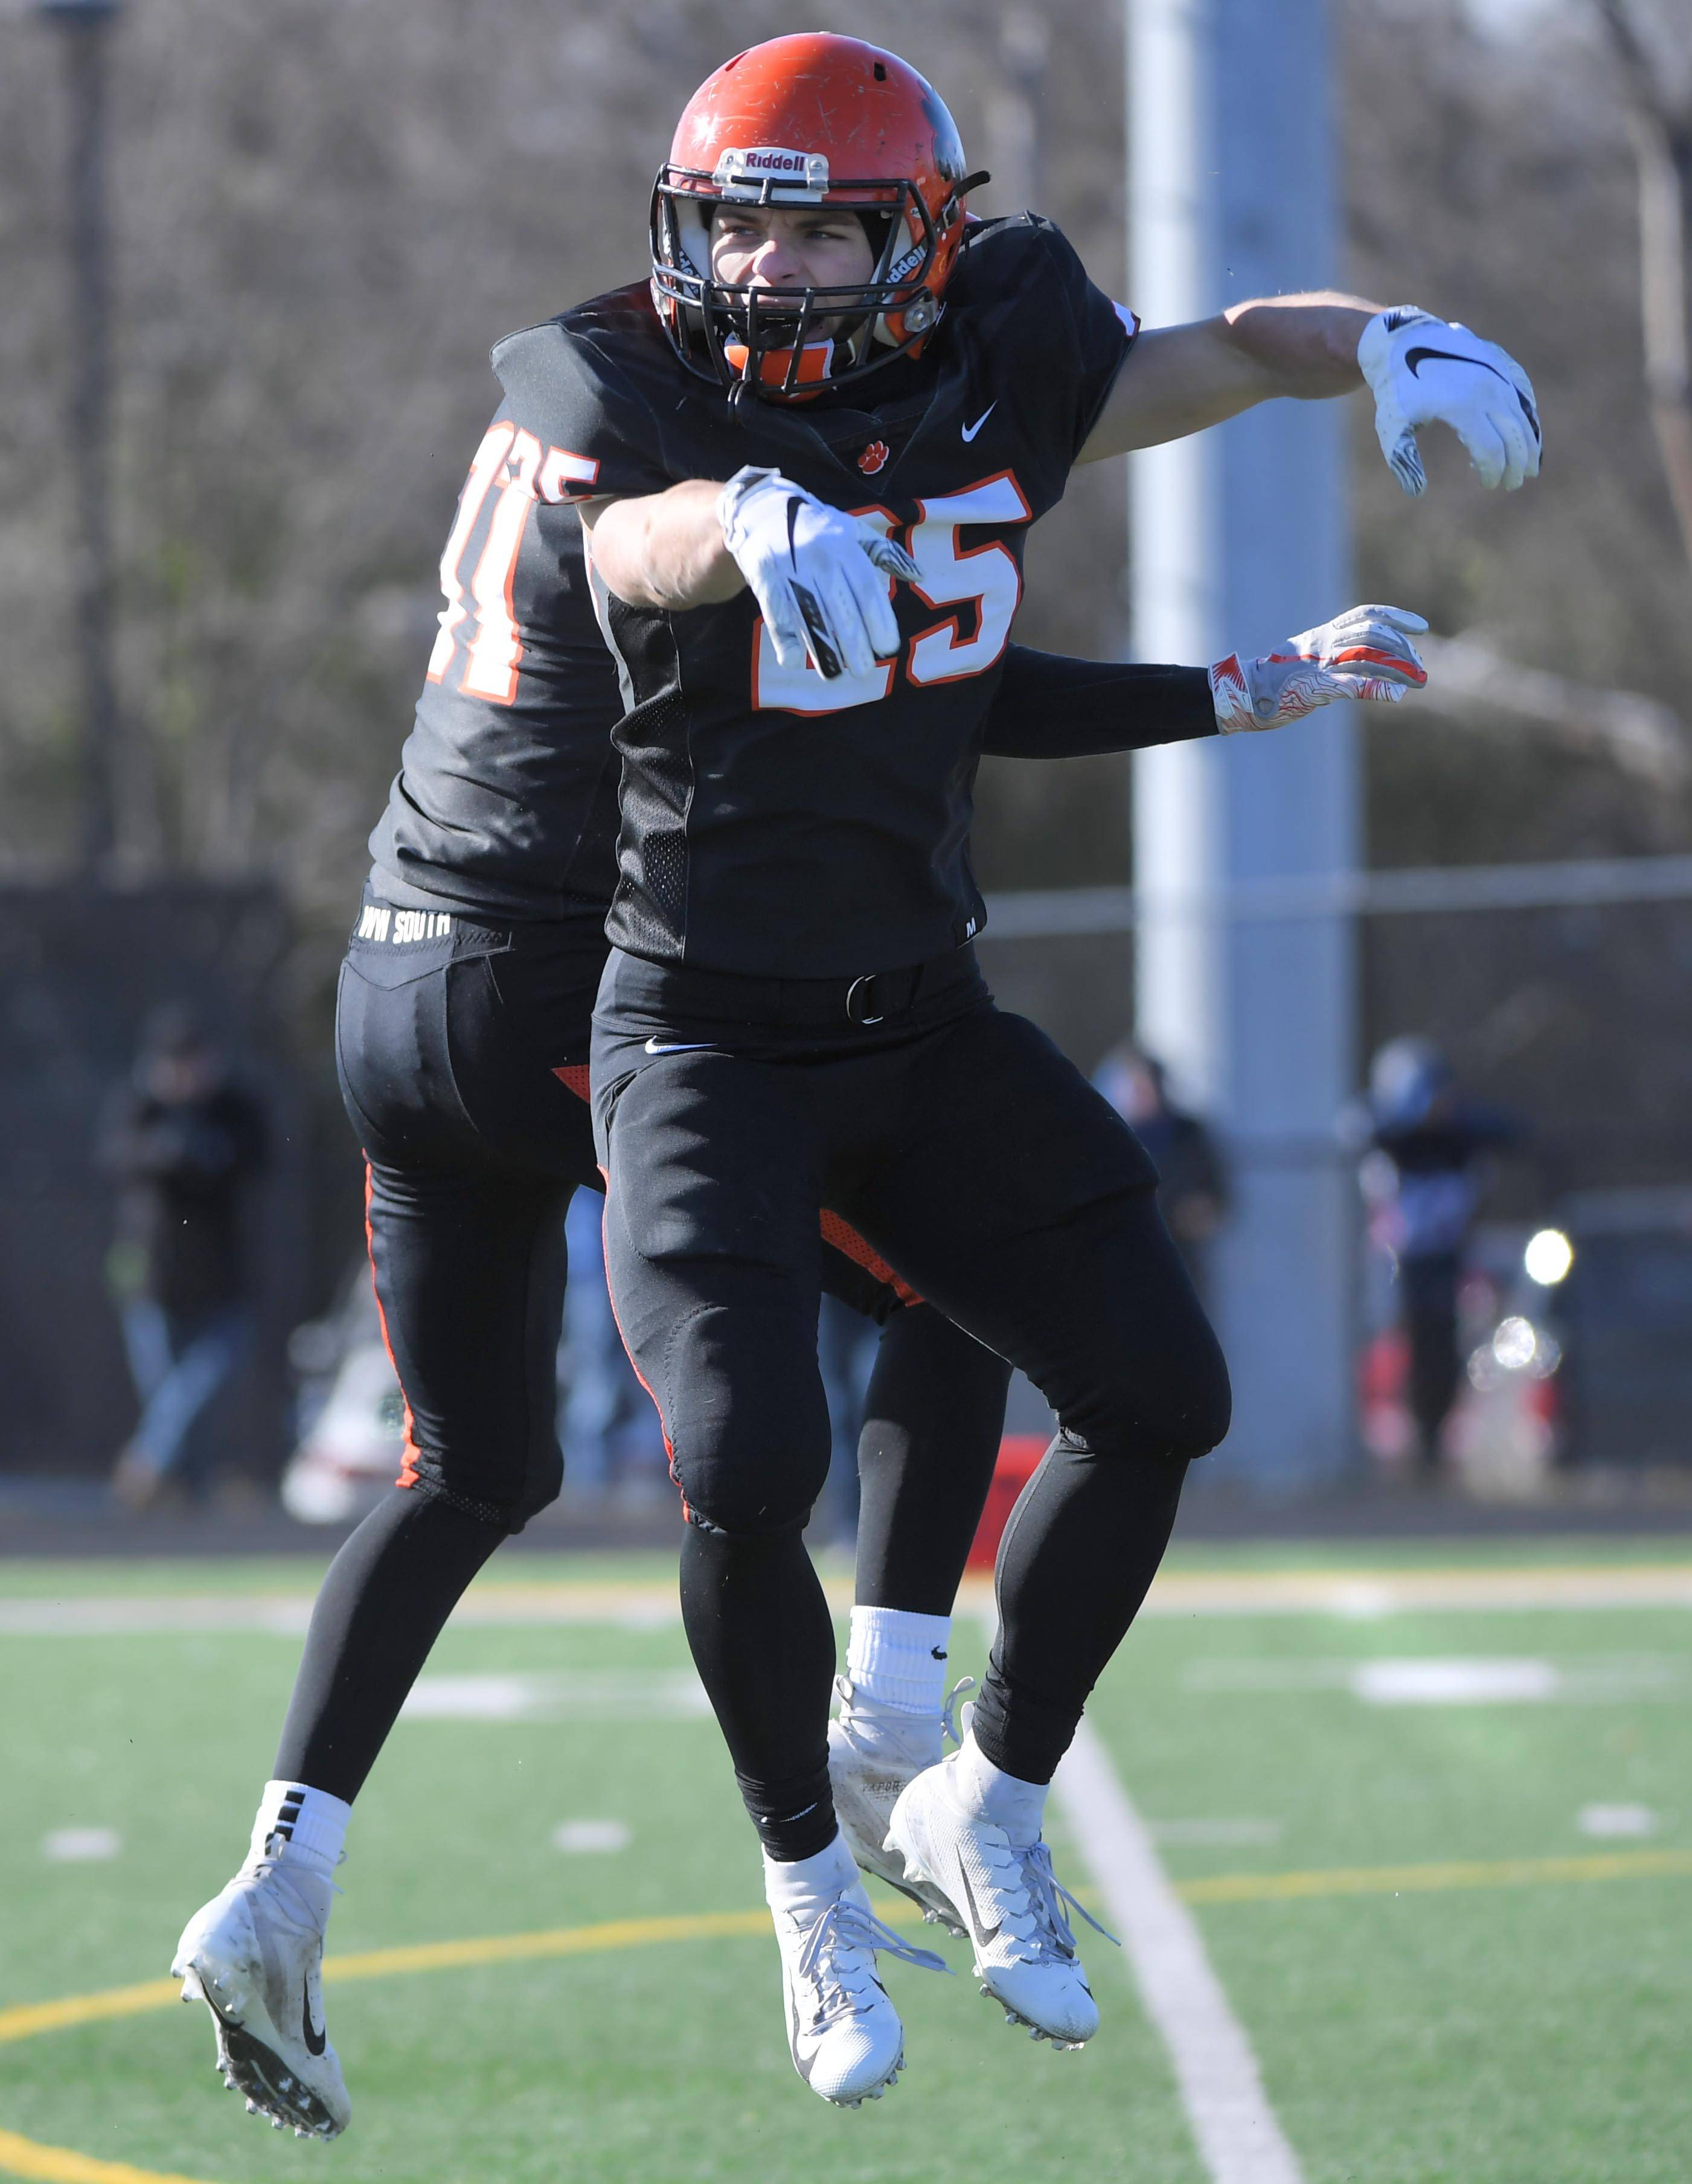 Wheaton Warrenville South's Jake Arthurs reacts after his first quarter touchdown against St. Charles North Saturday in a quarterfinal playoff football game in Wheaton.